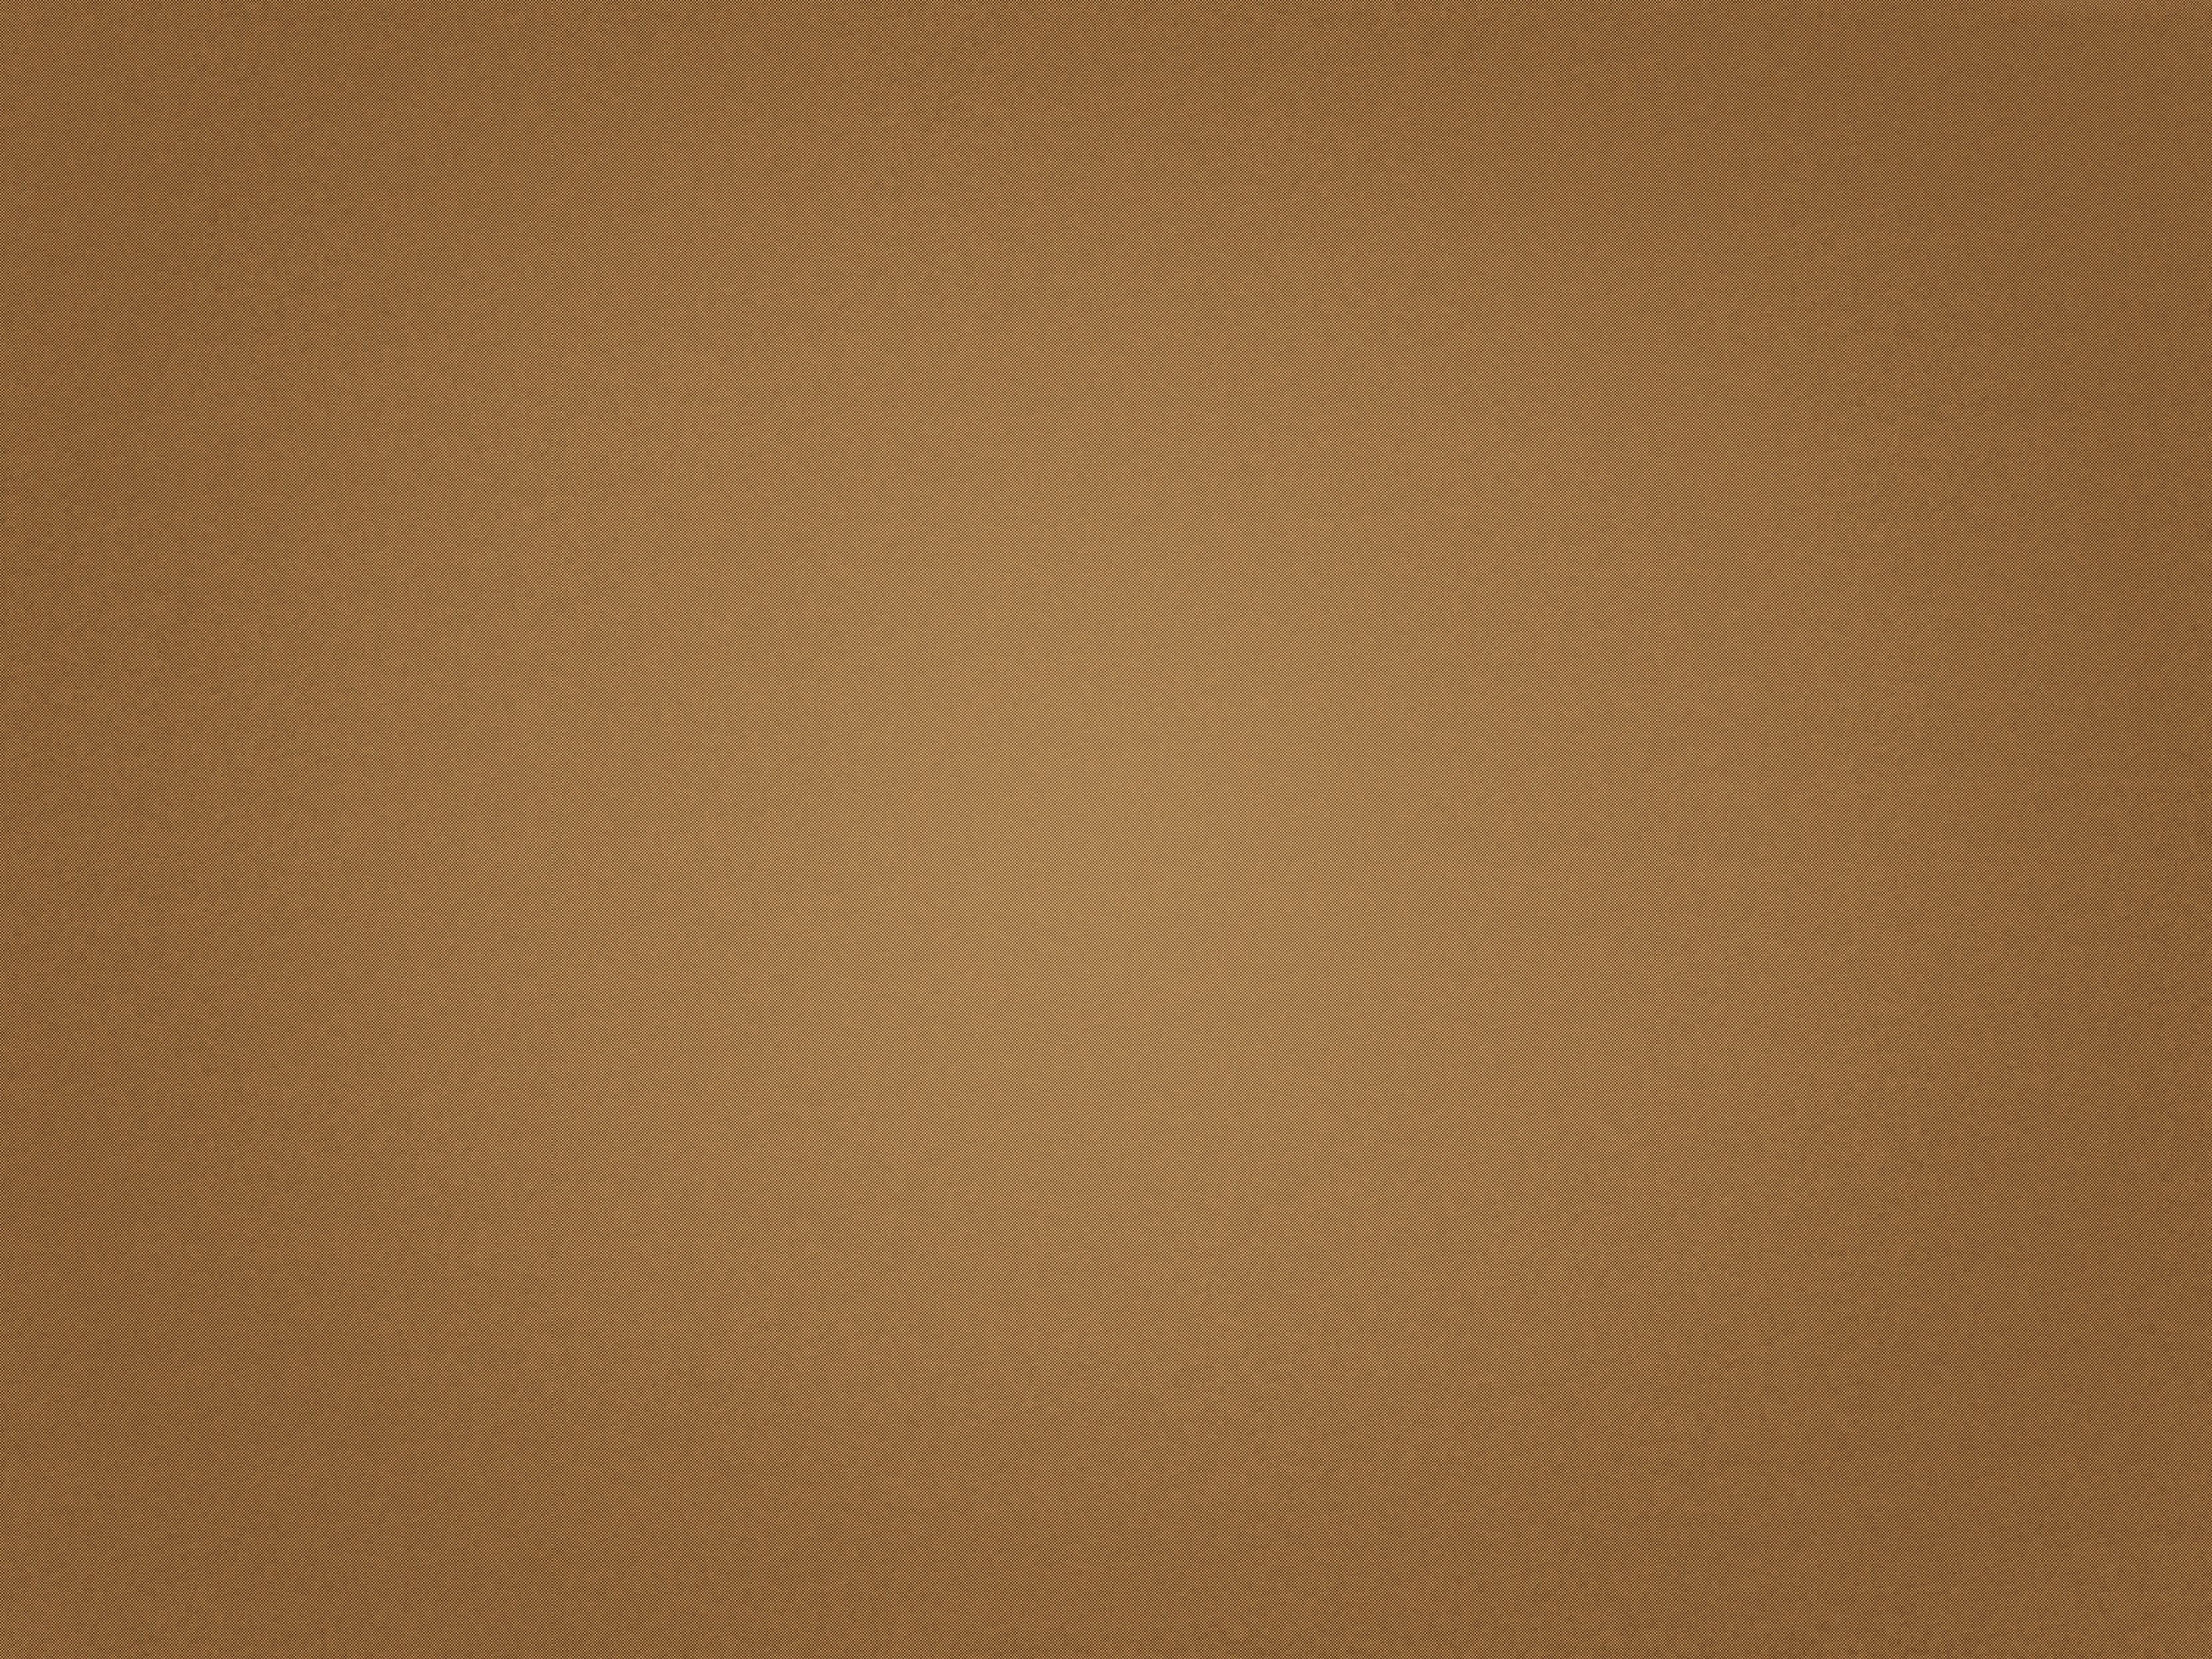 Brown paper, download texture, background, paper texture